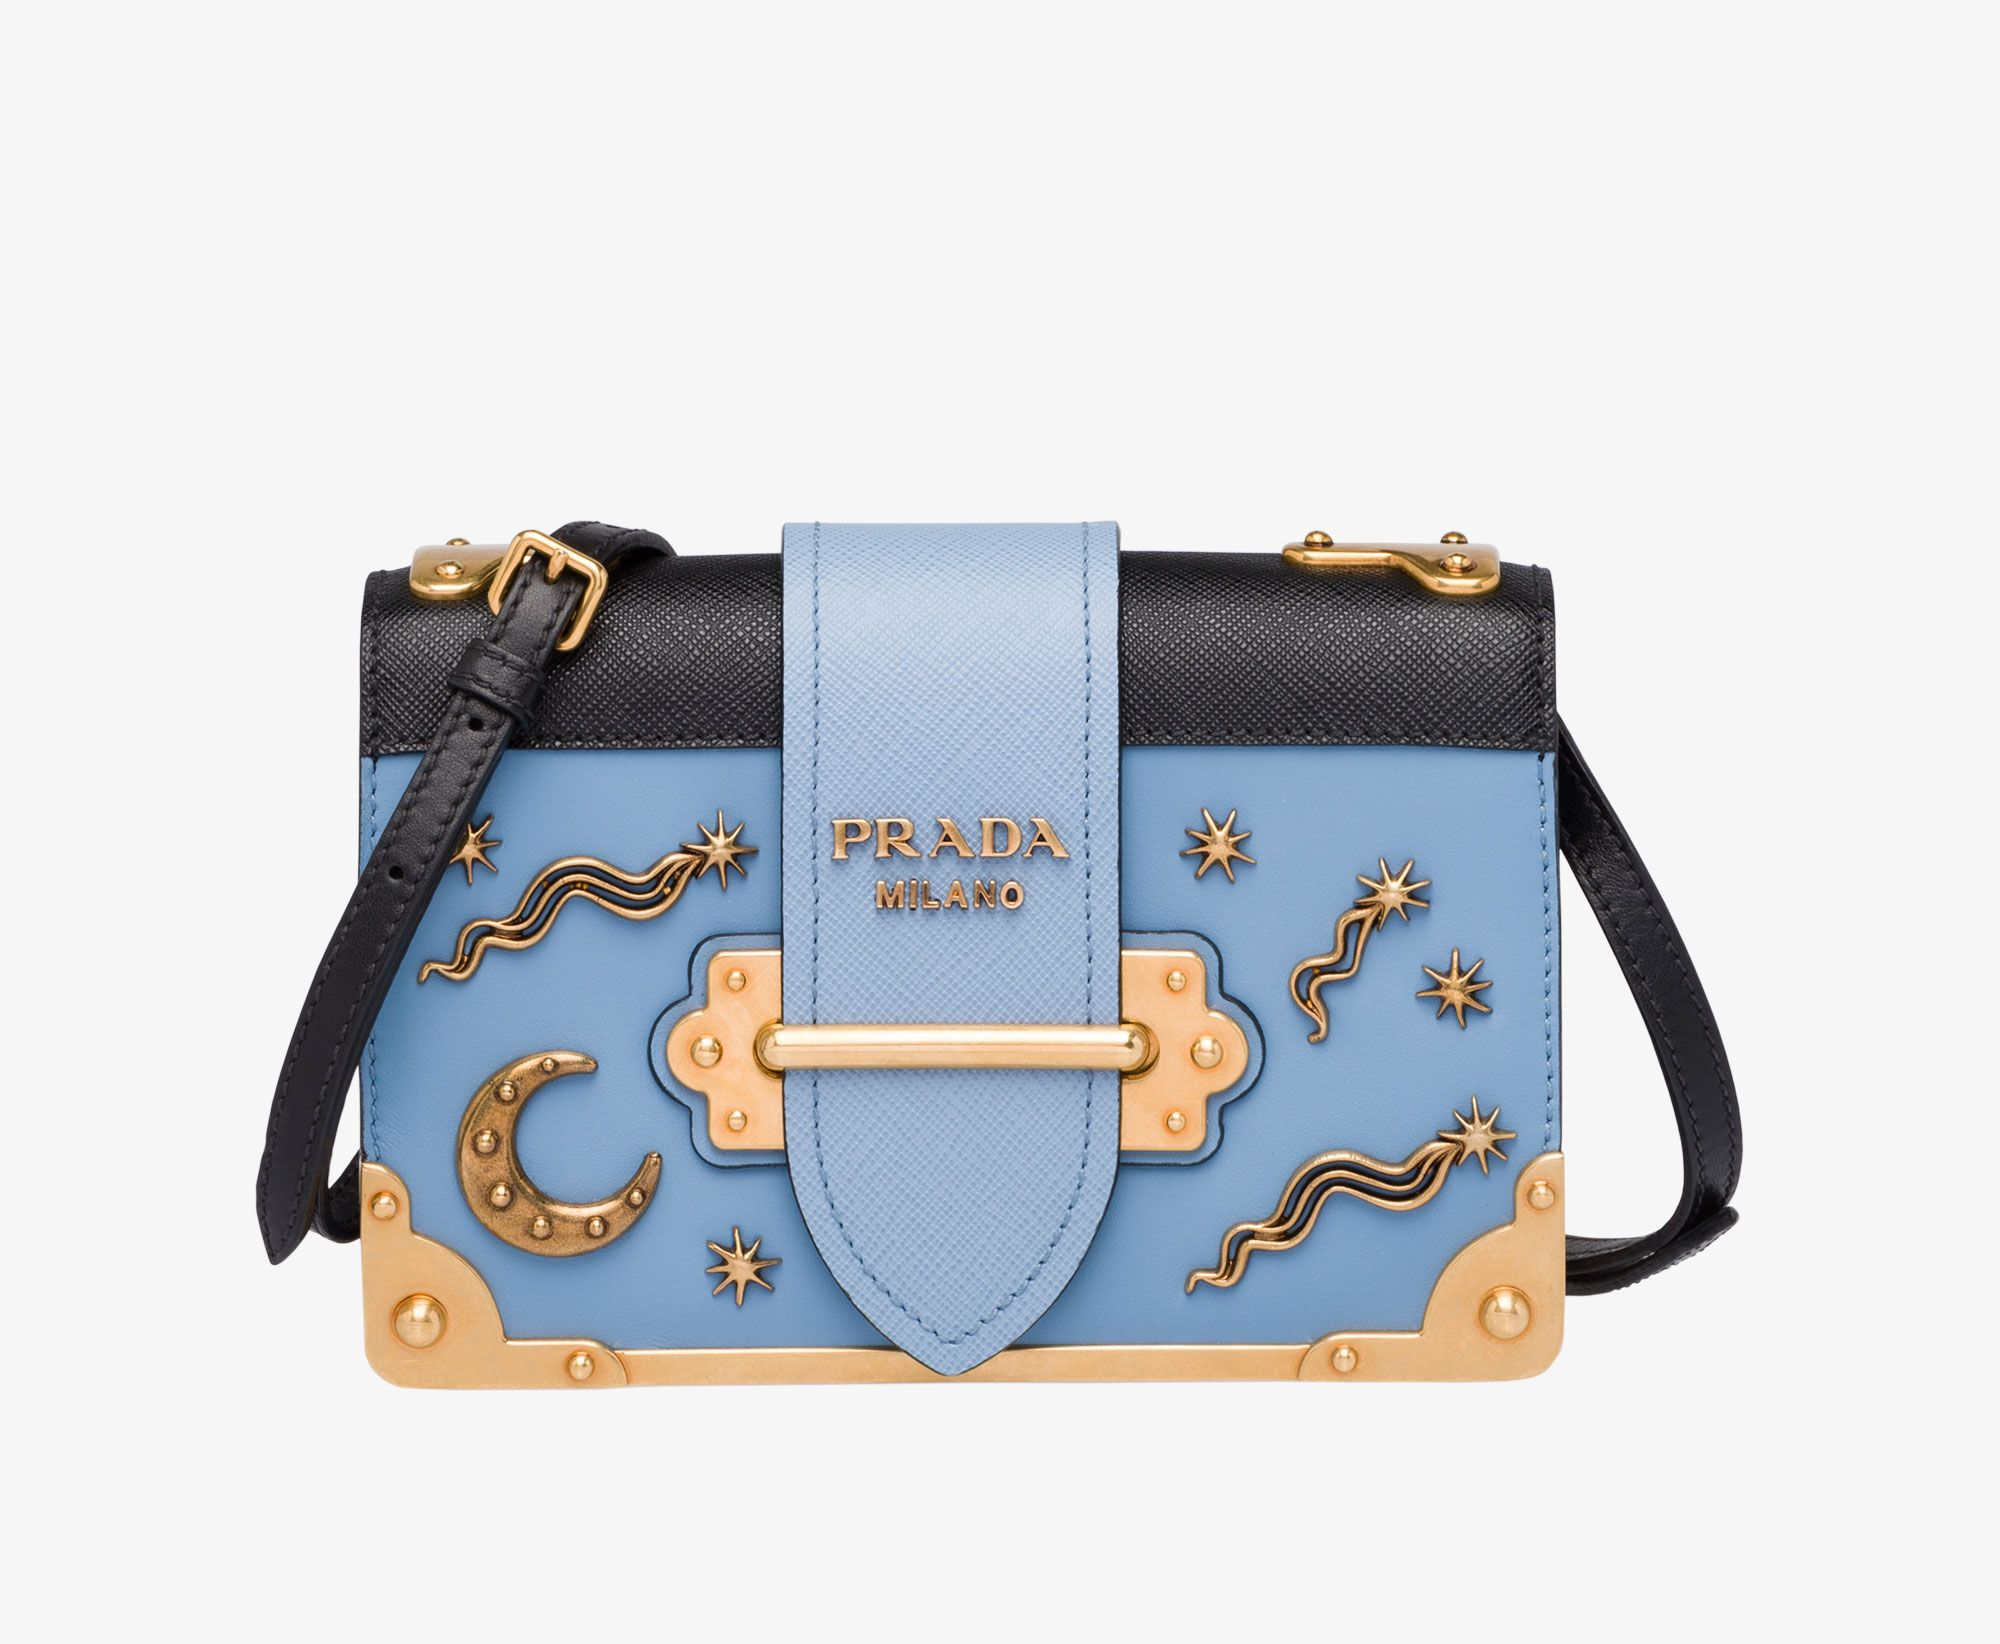 b4be7c5db47272 authentic prada cahier calf leather bag with metal details detachable  leather shoulder strap bronze hardware bronze